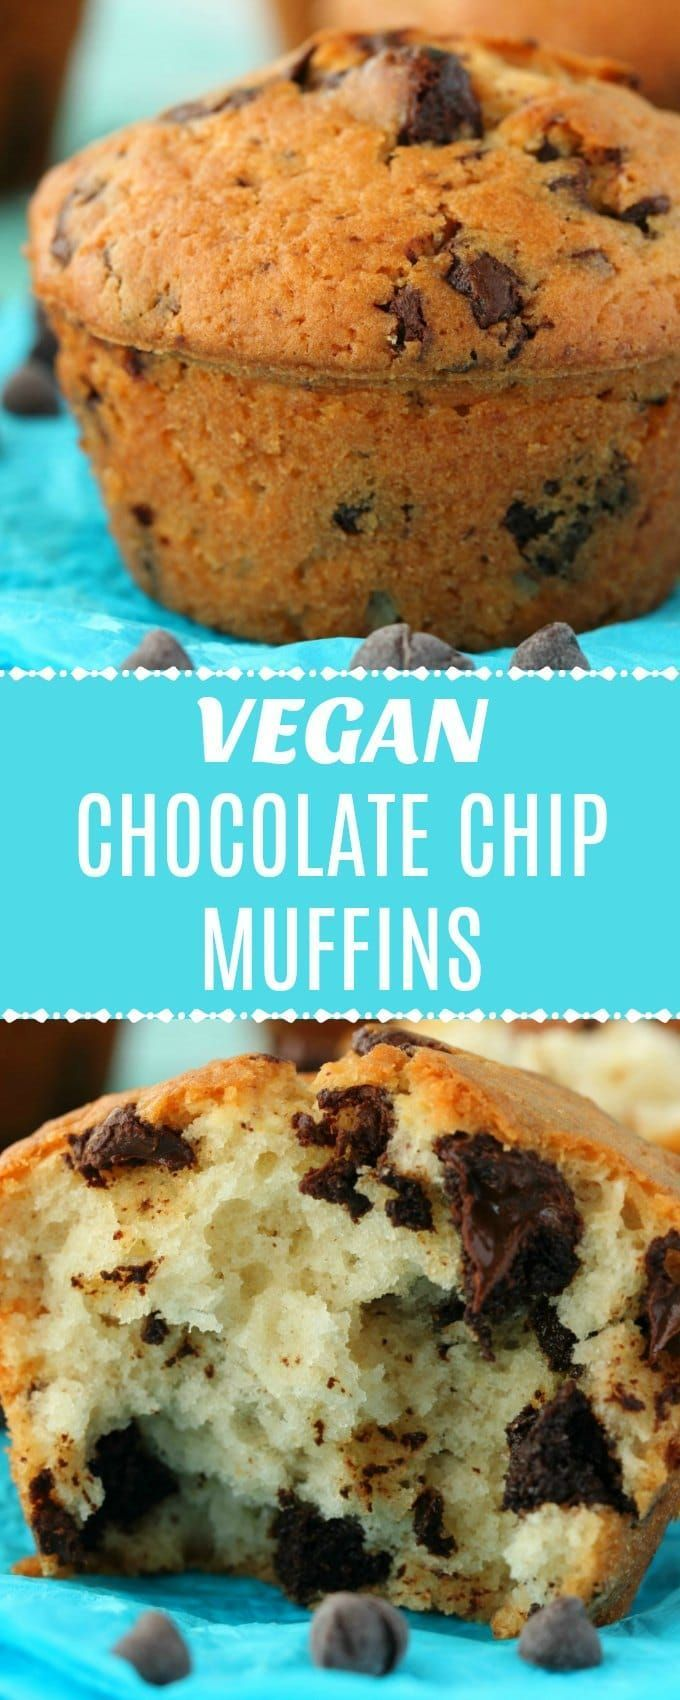 8-ingredient vegan chocolate chip muffins, moist, rich and packed with chocolate chunks. This is when you get to eat dessert for breakfast! |